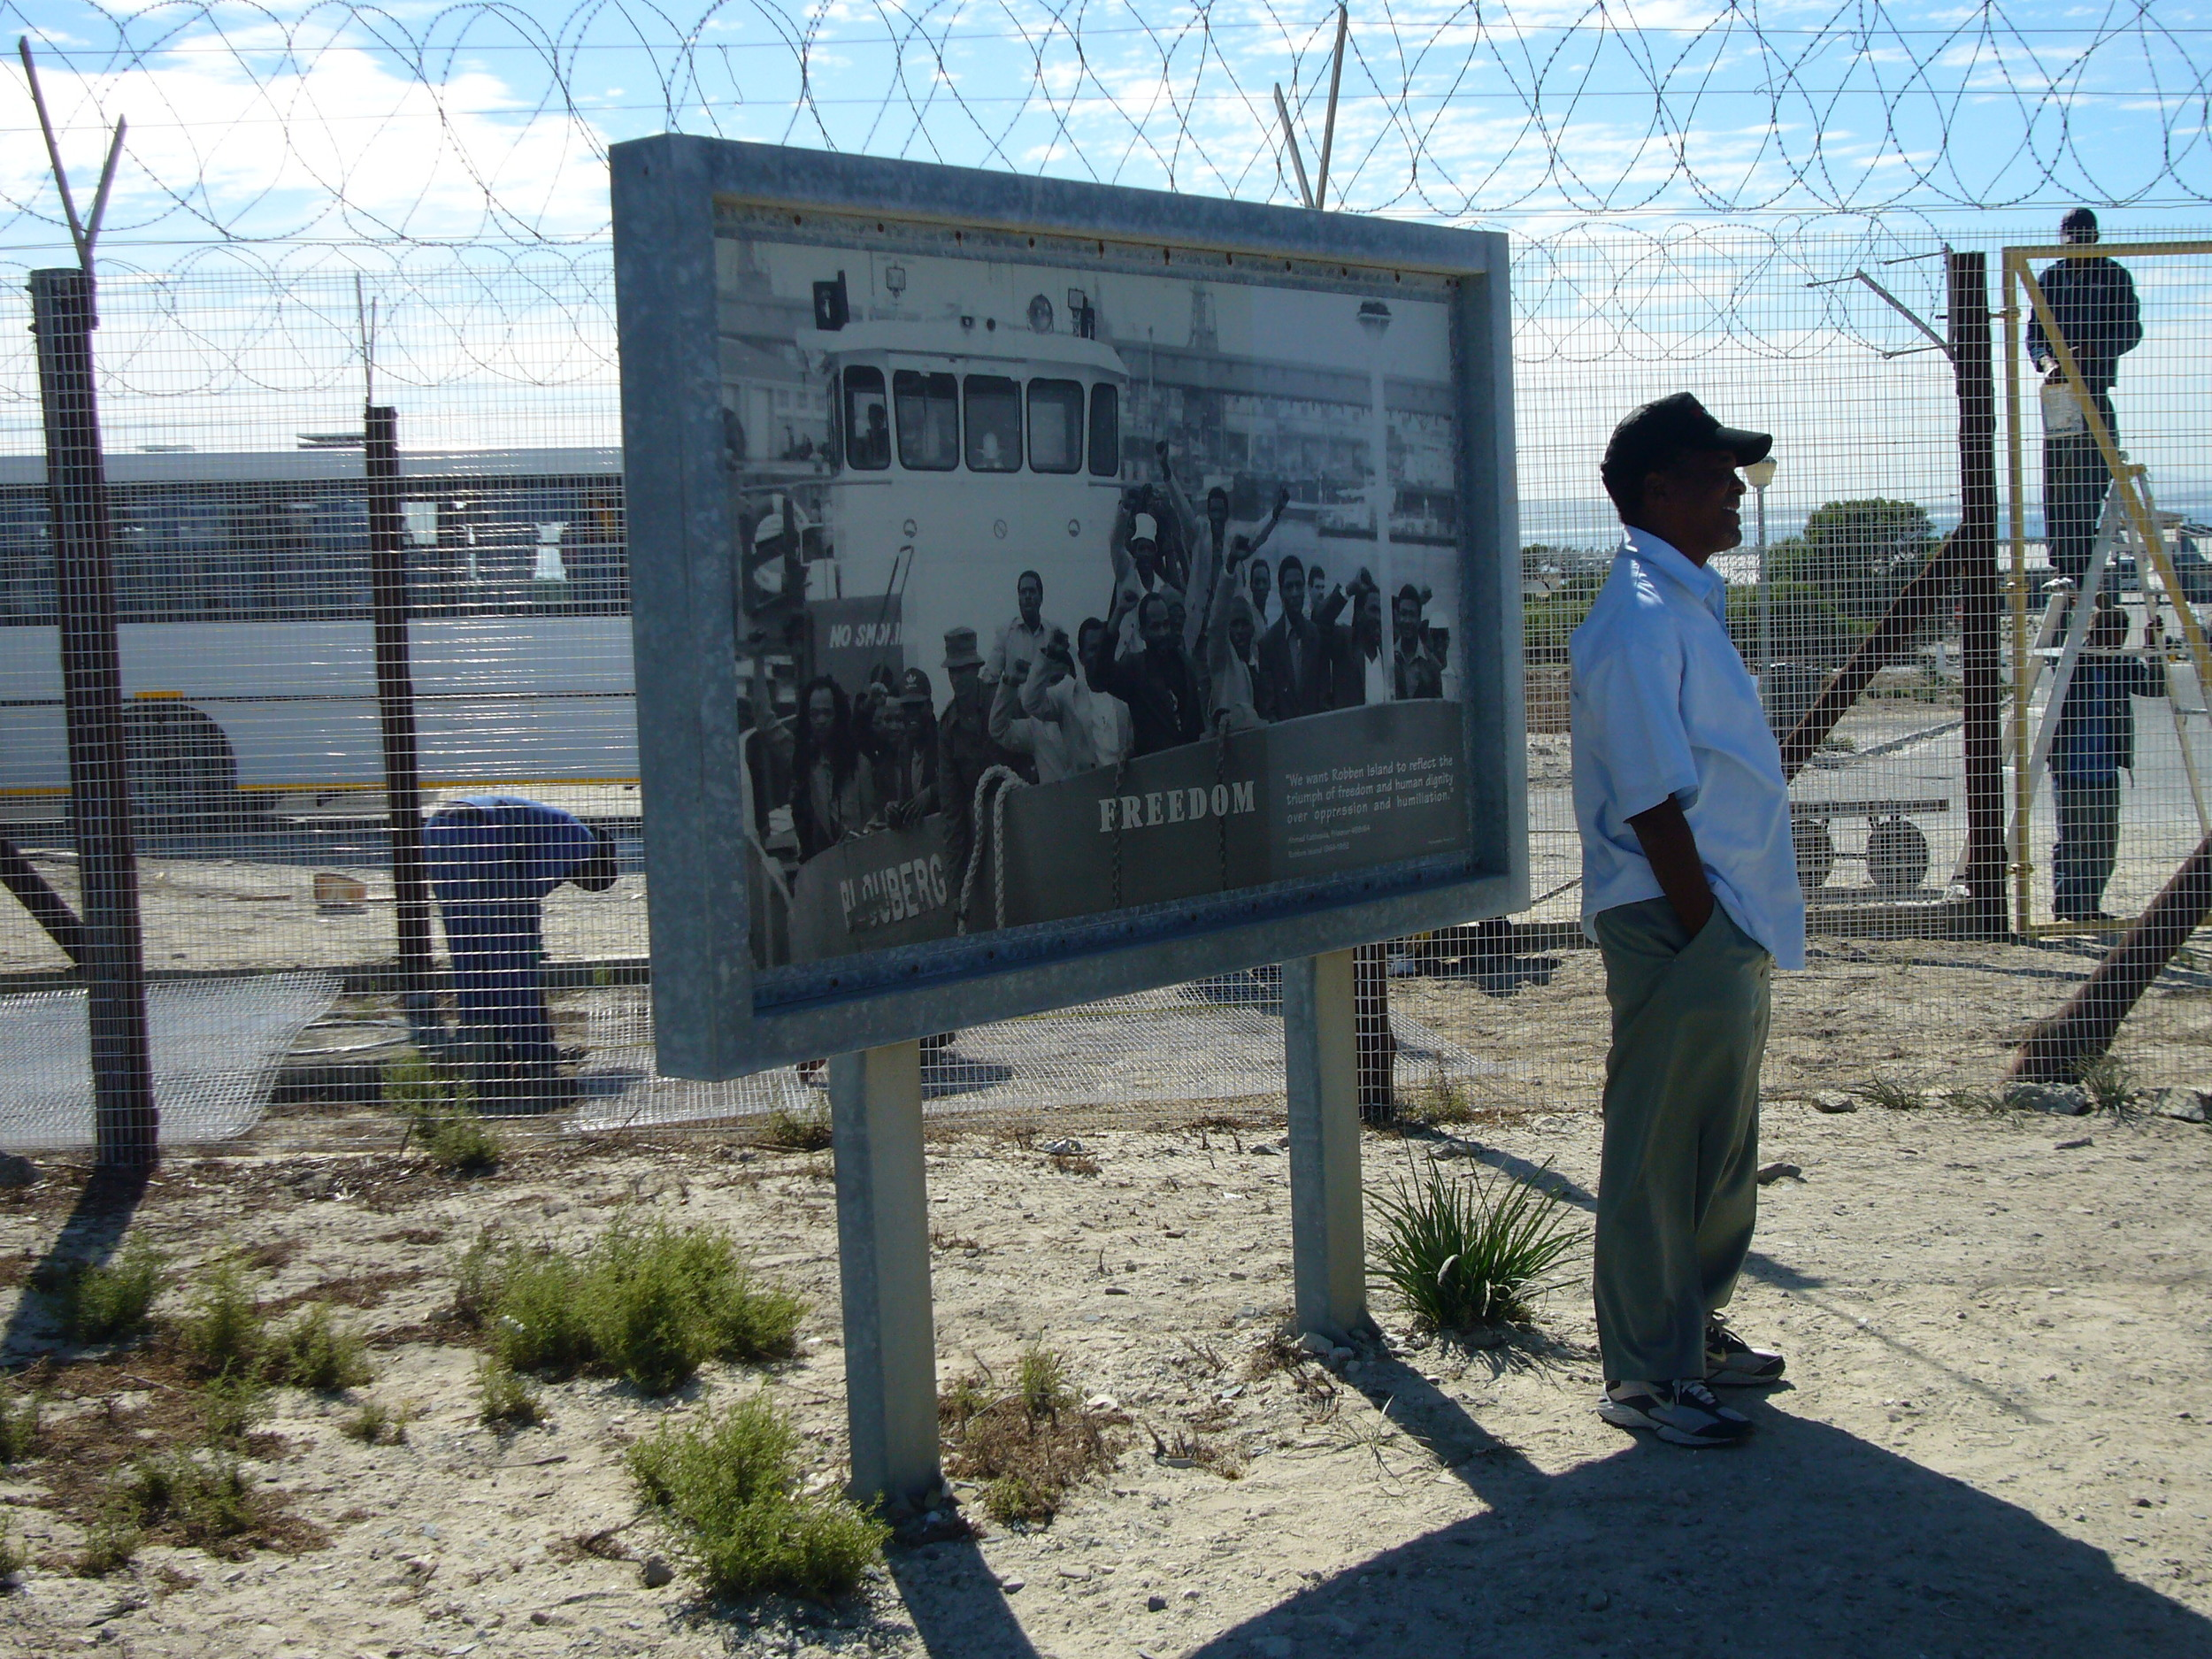 Guide and ex-prisoner at Robben Island